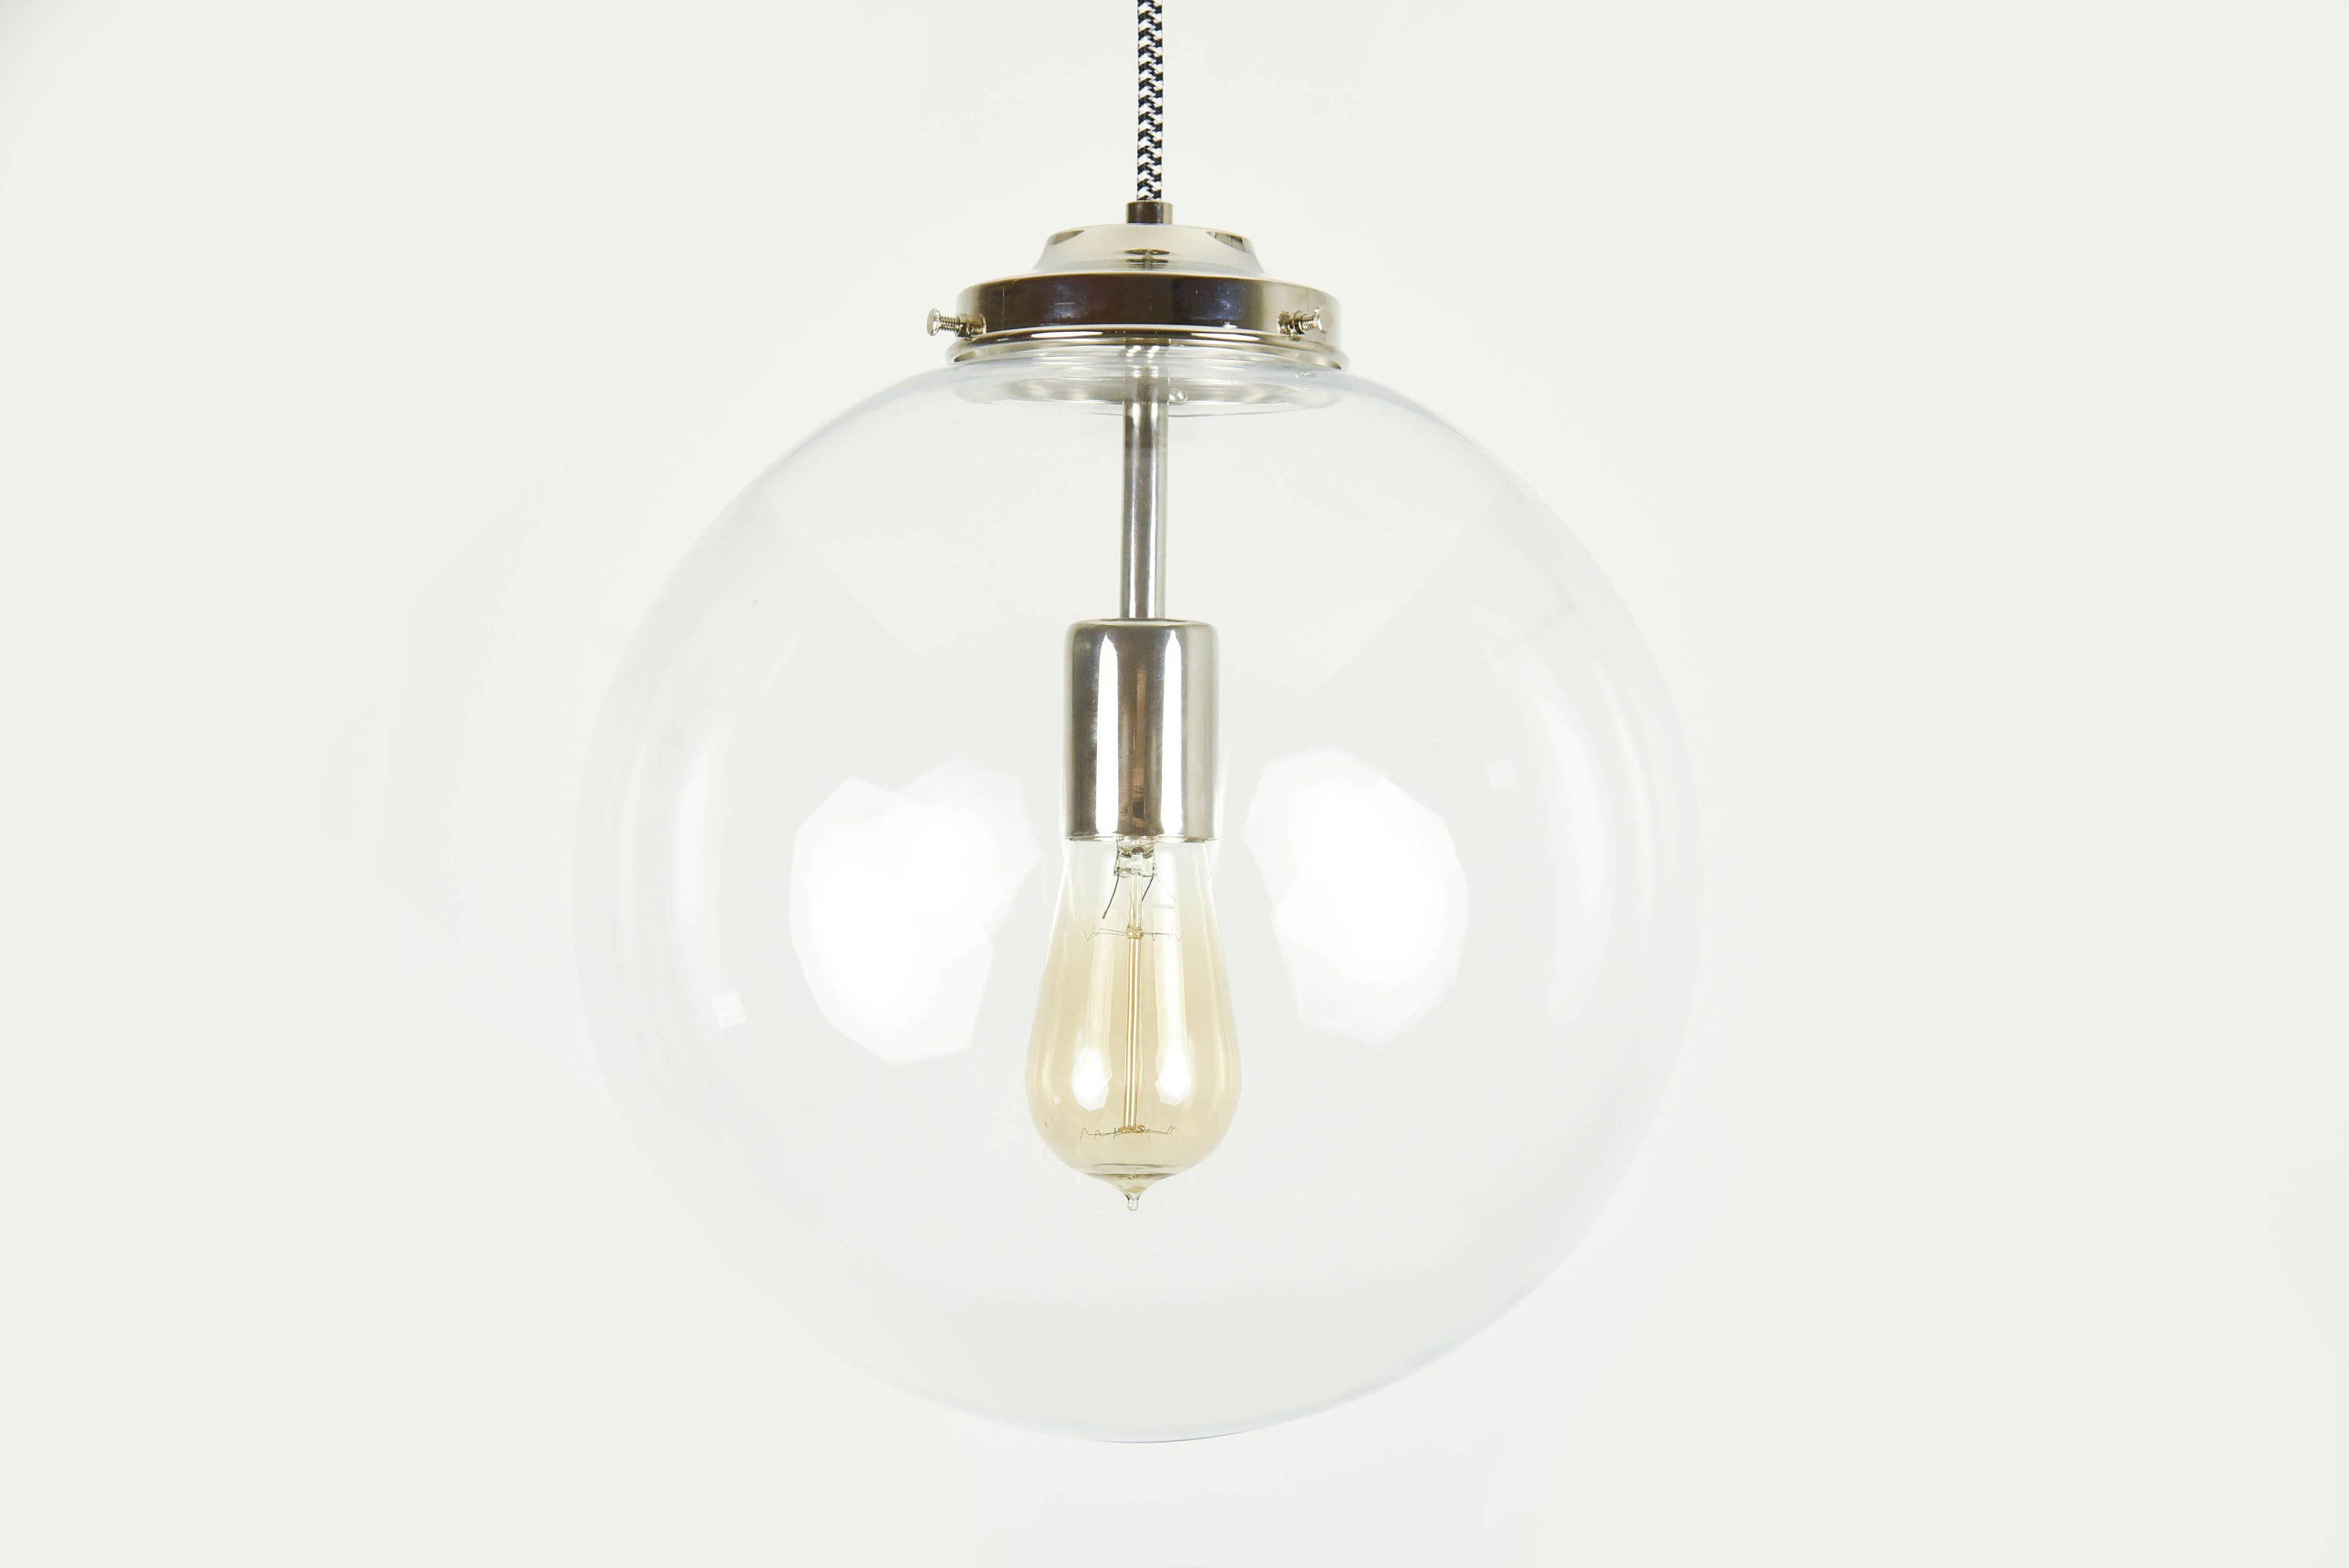 Polished Nickel Modern Pendant Lighting with Clear Glass Globe